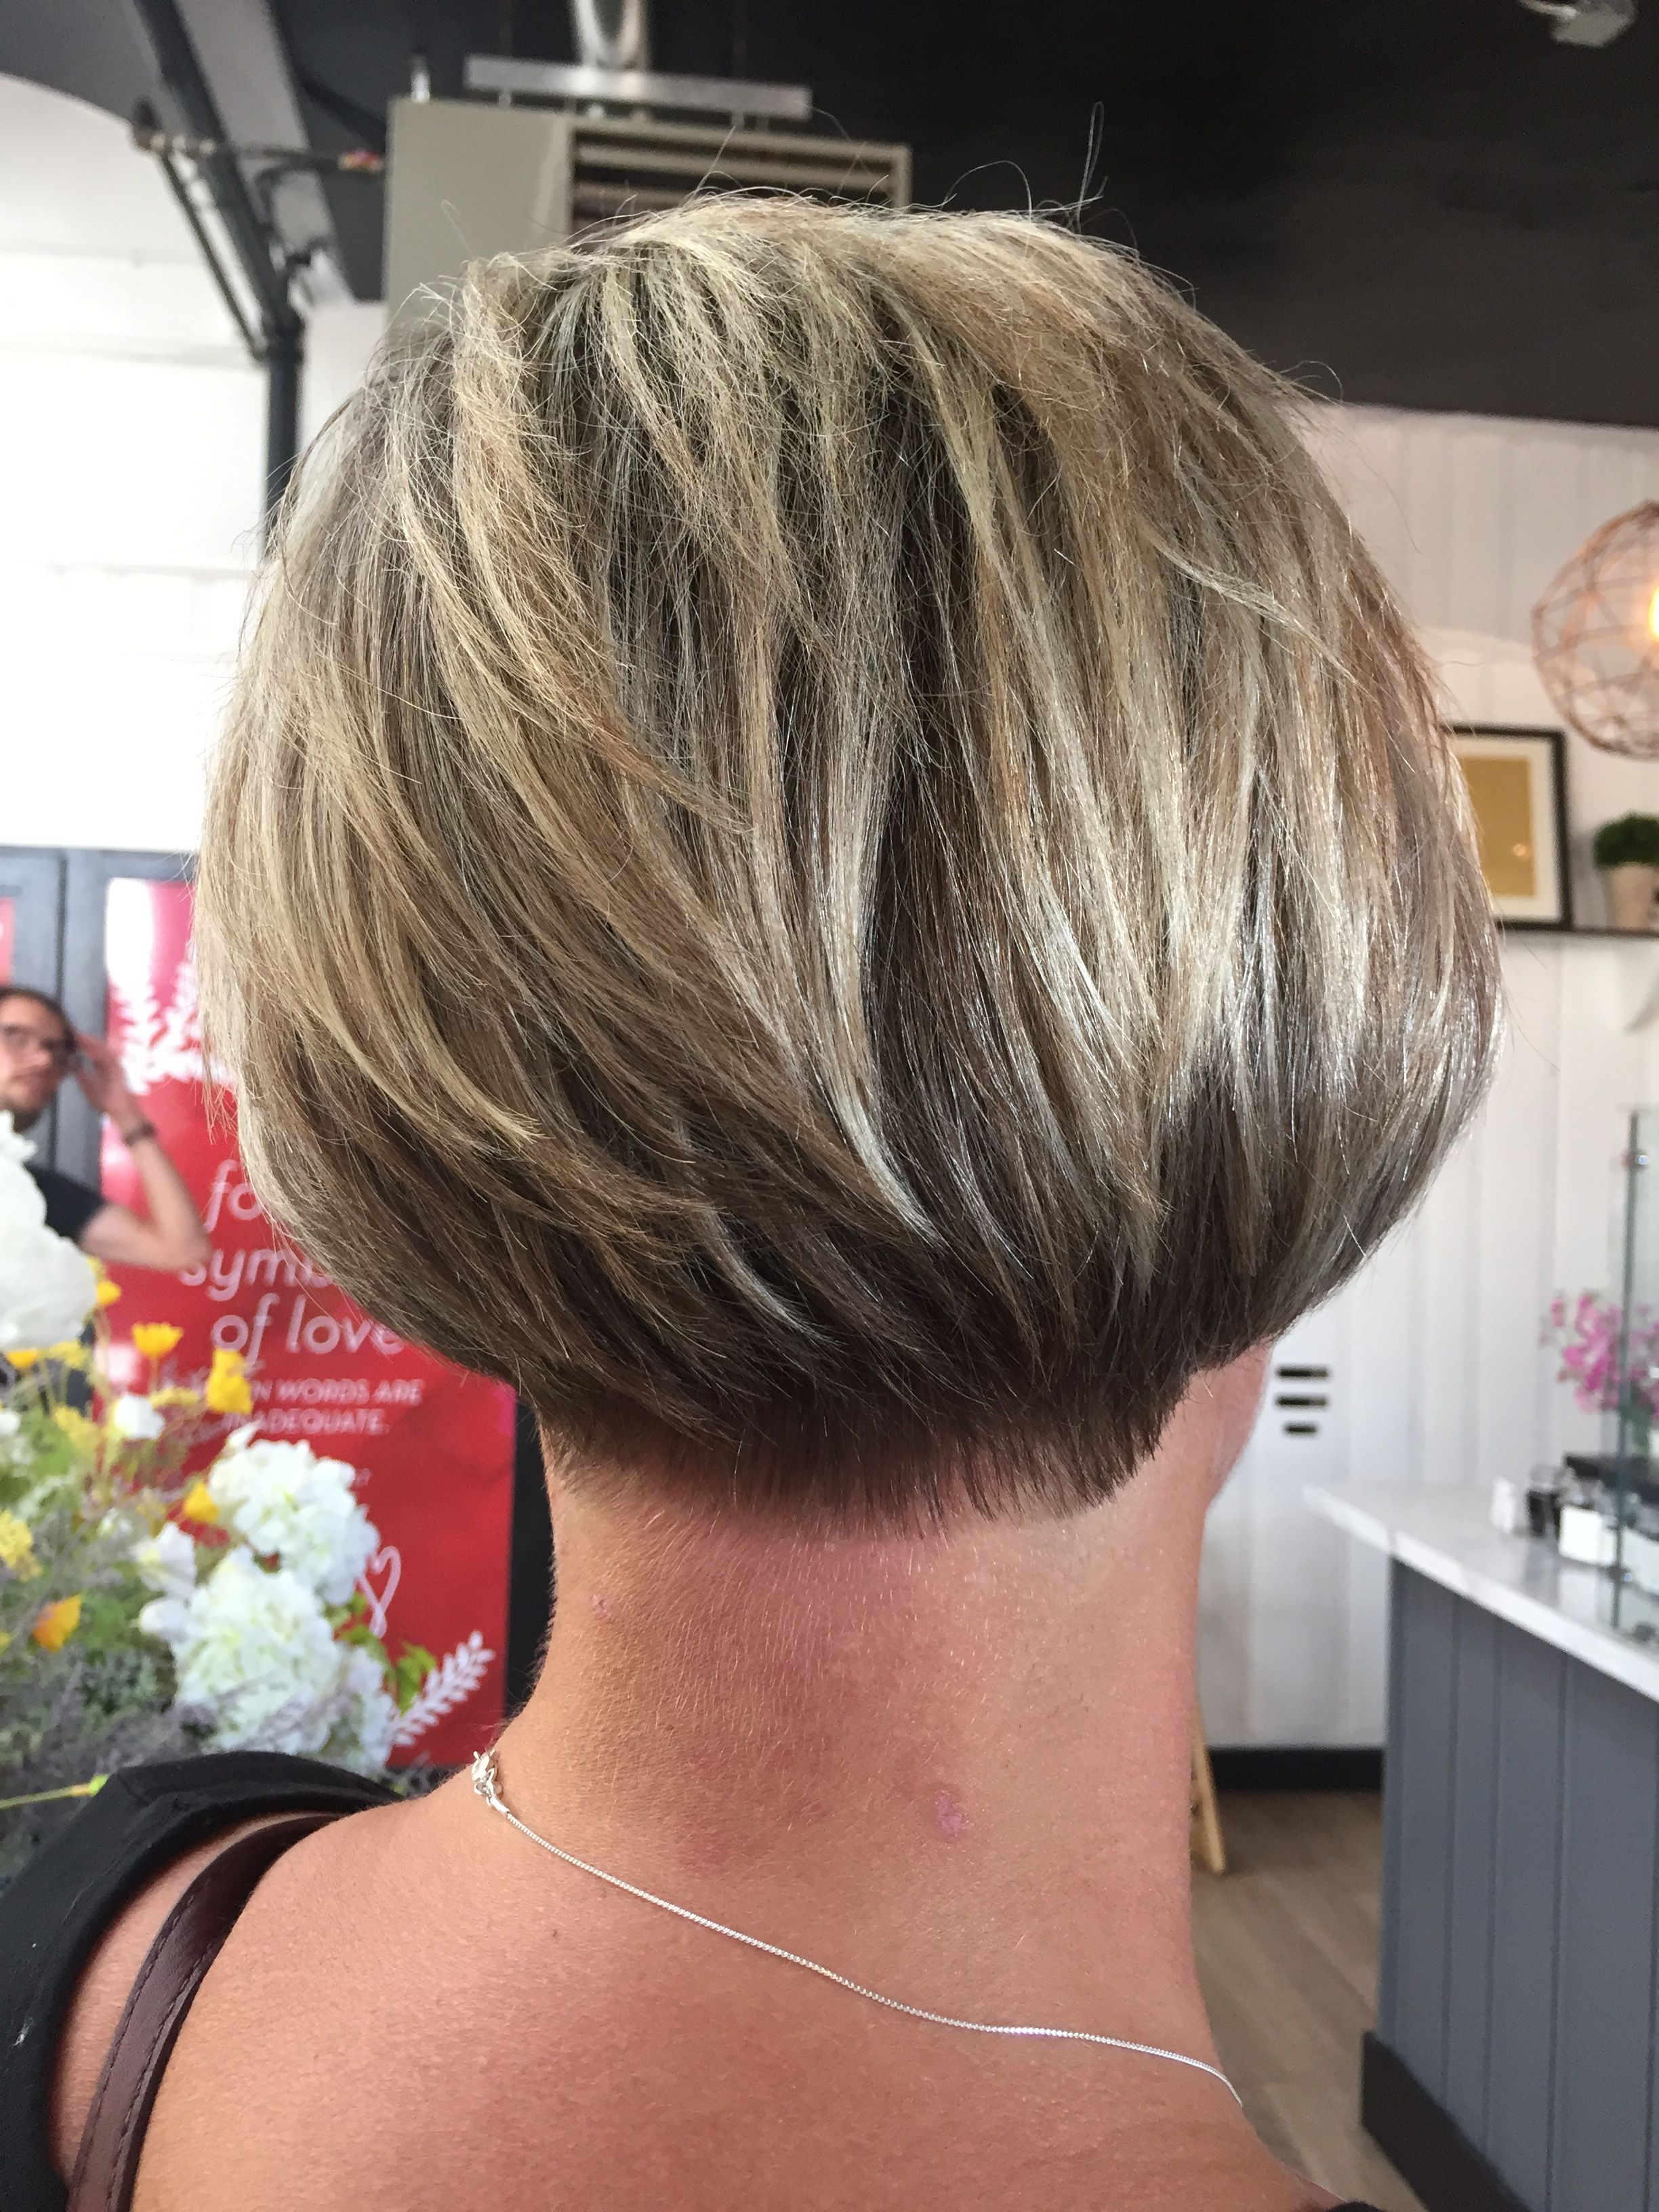 pin by charlotte griffin on just for me in 2019 | short hair